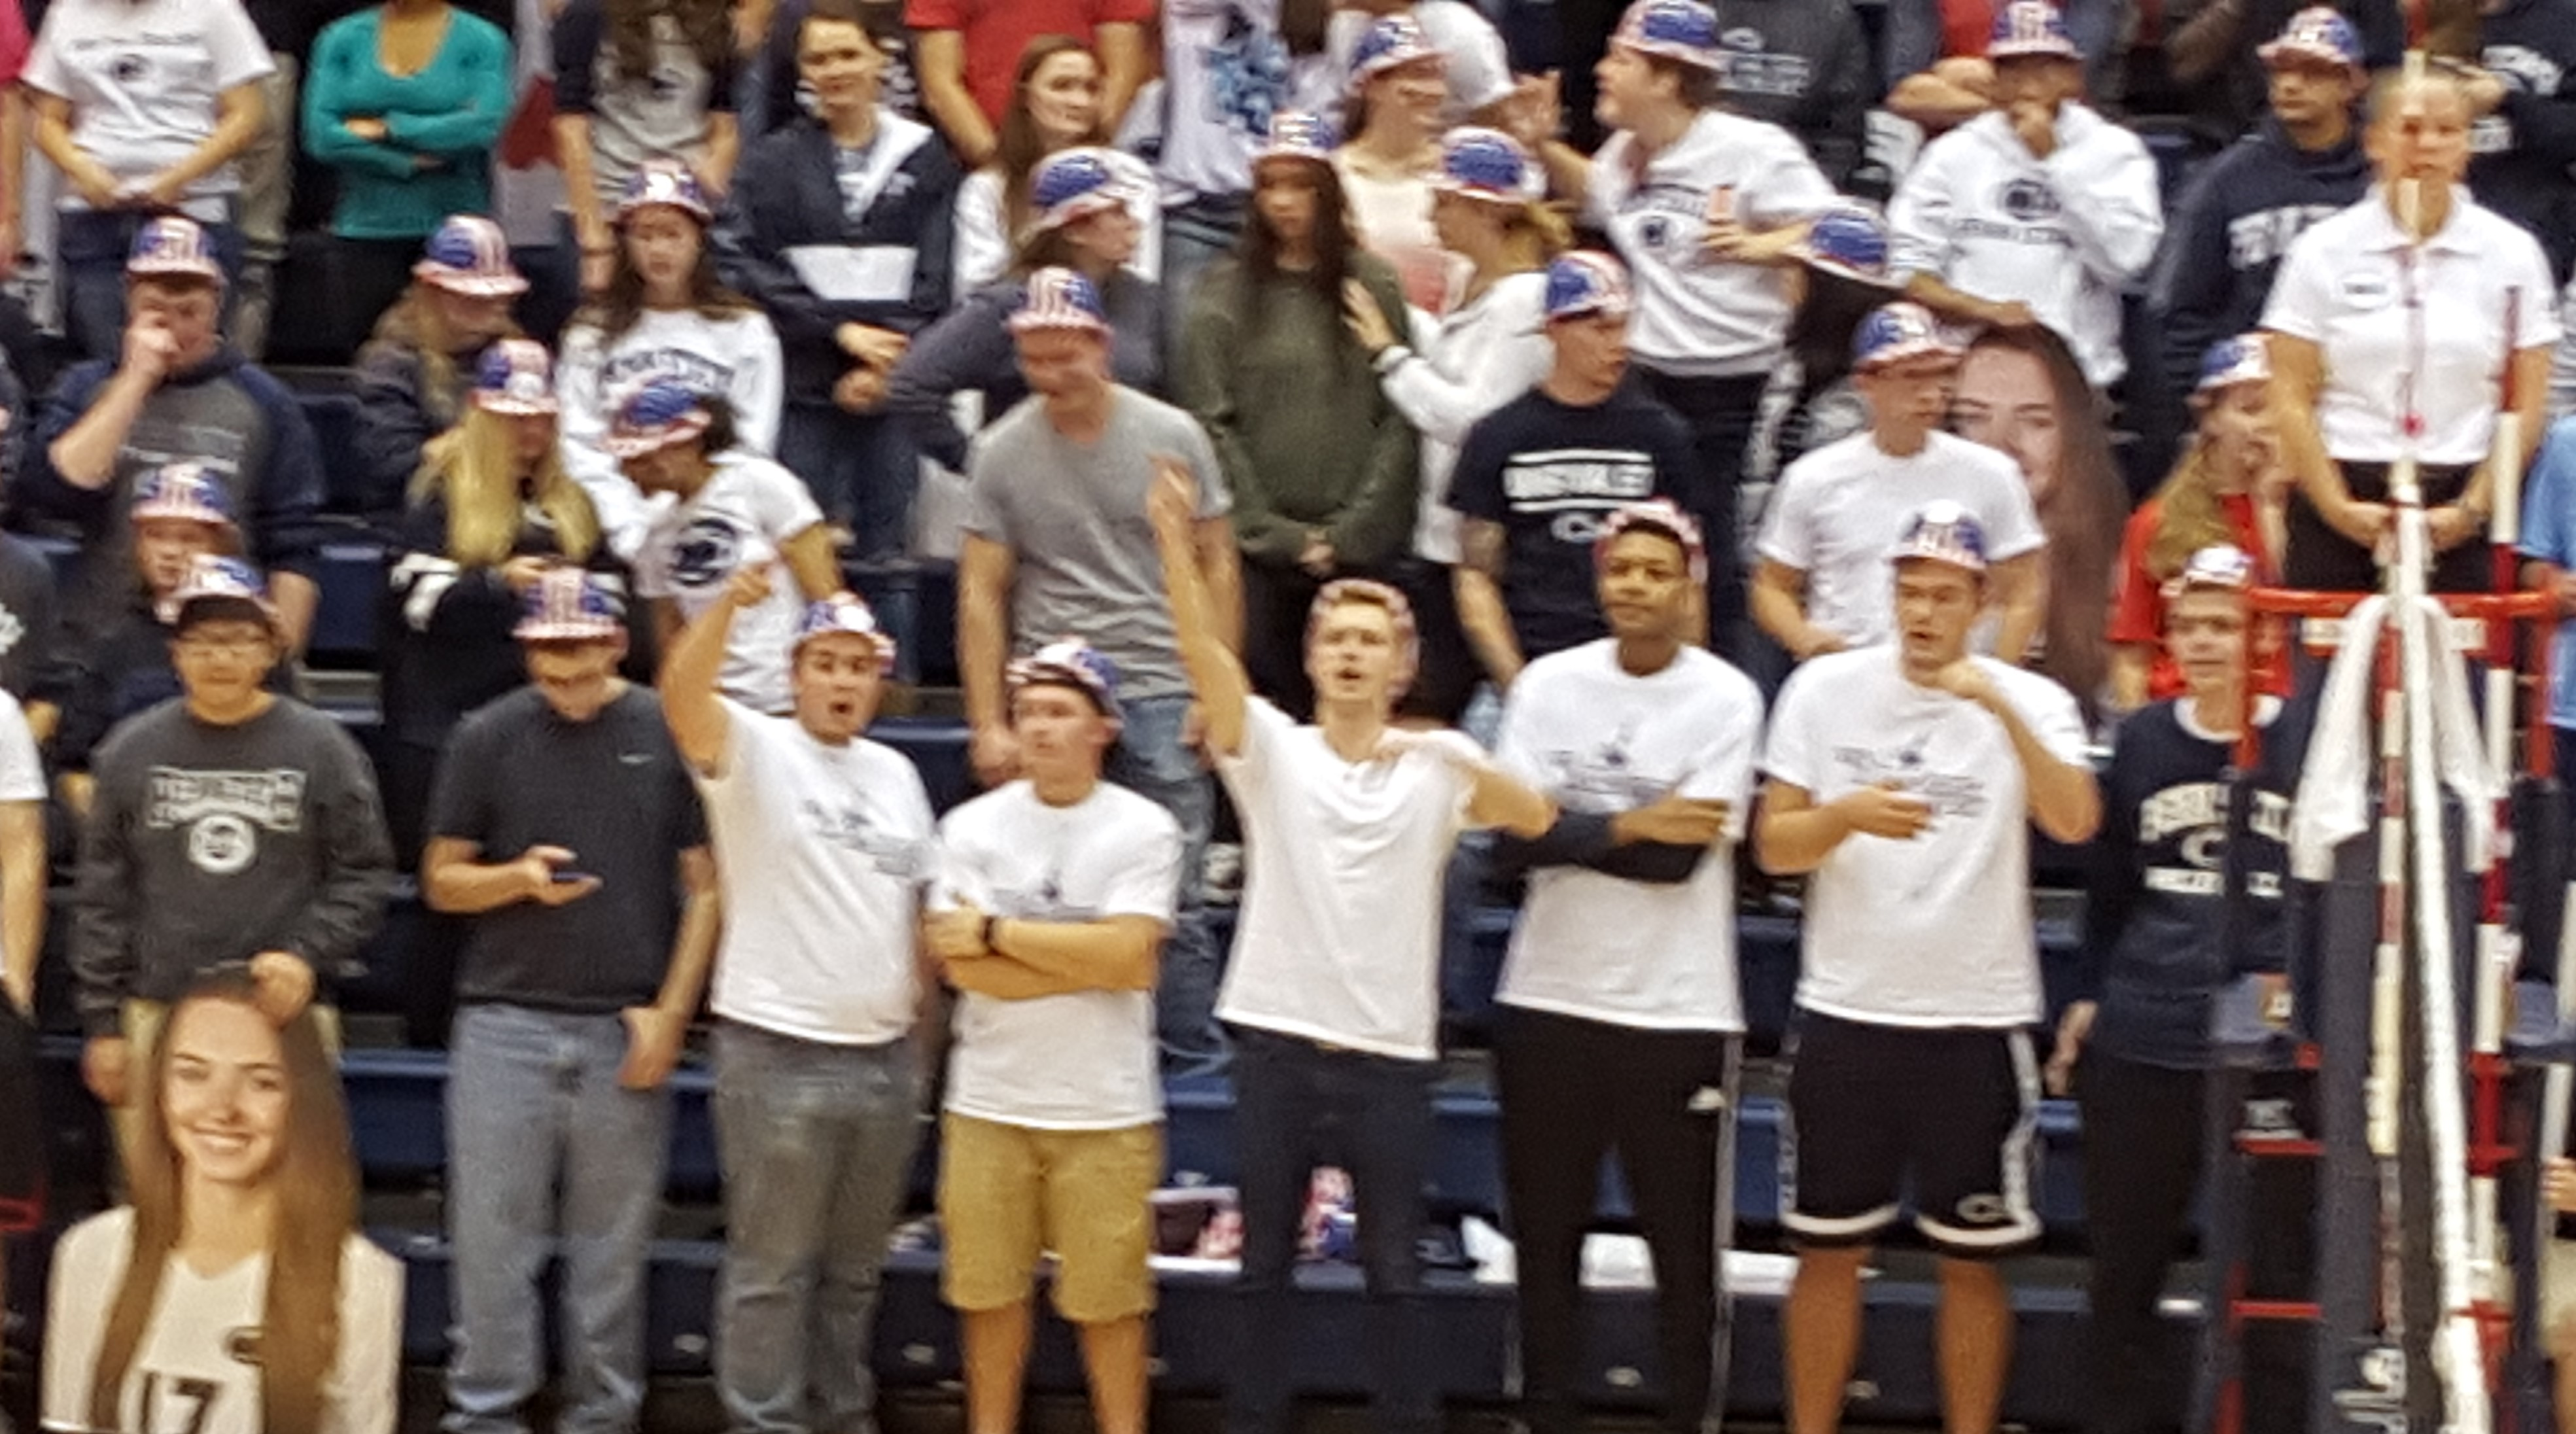 Penn State student wRECking Crew stands behind the team!